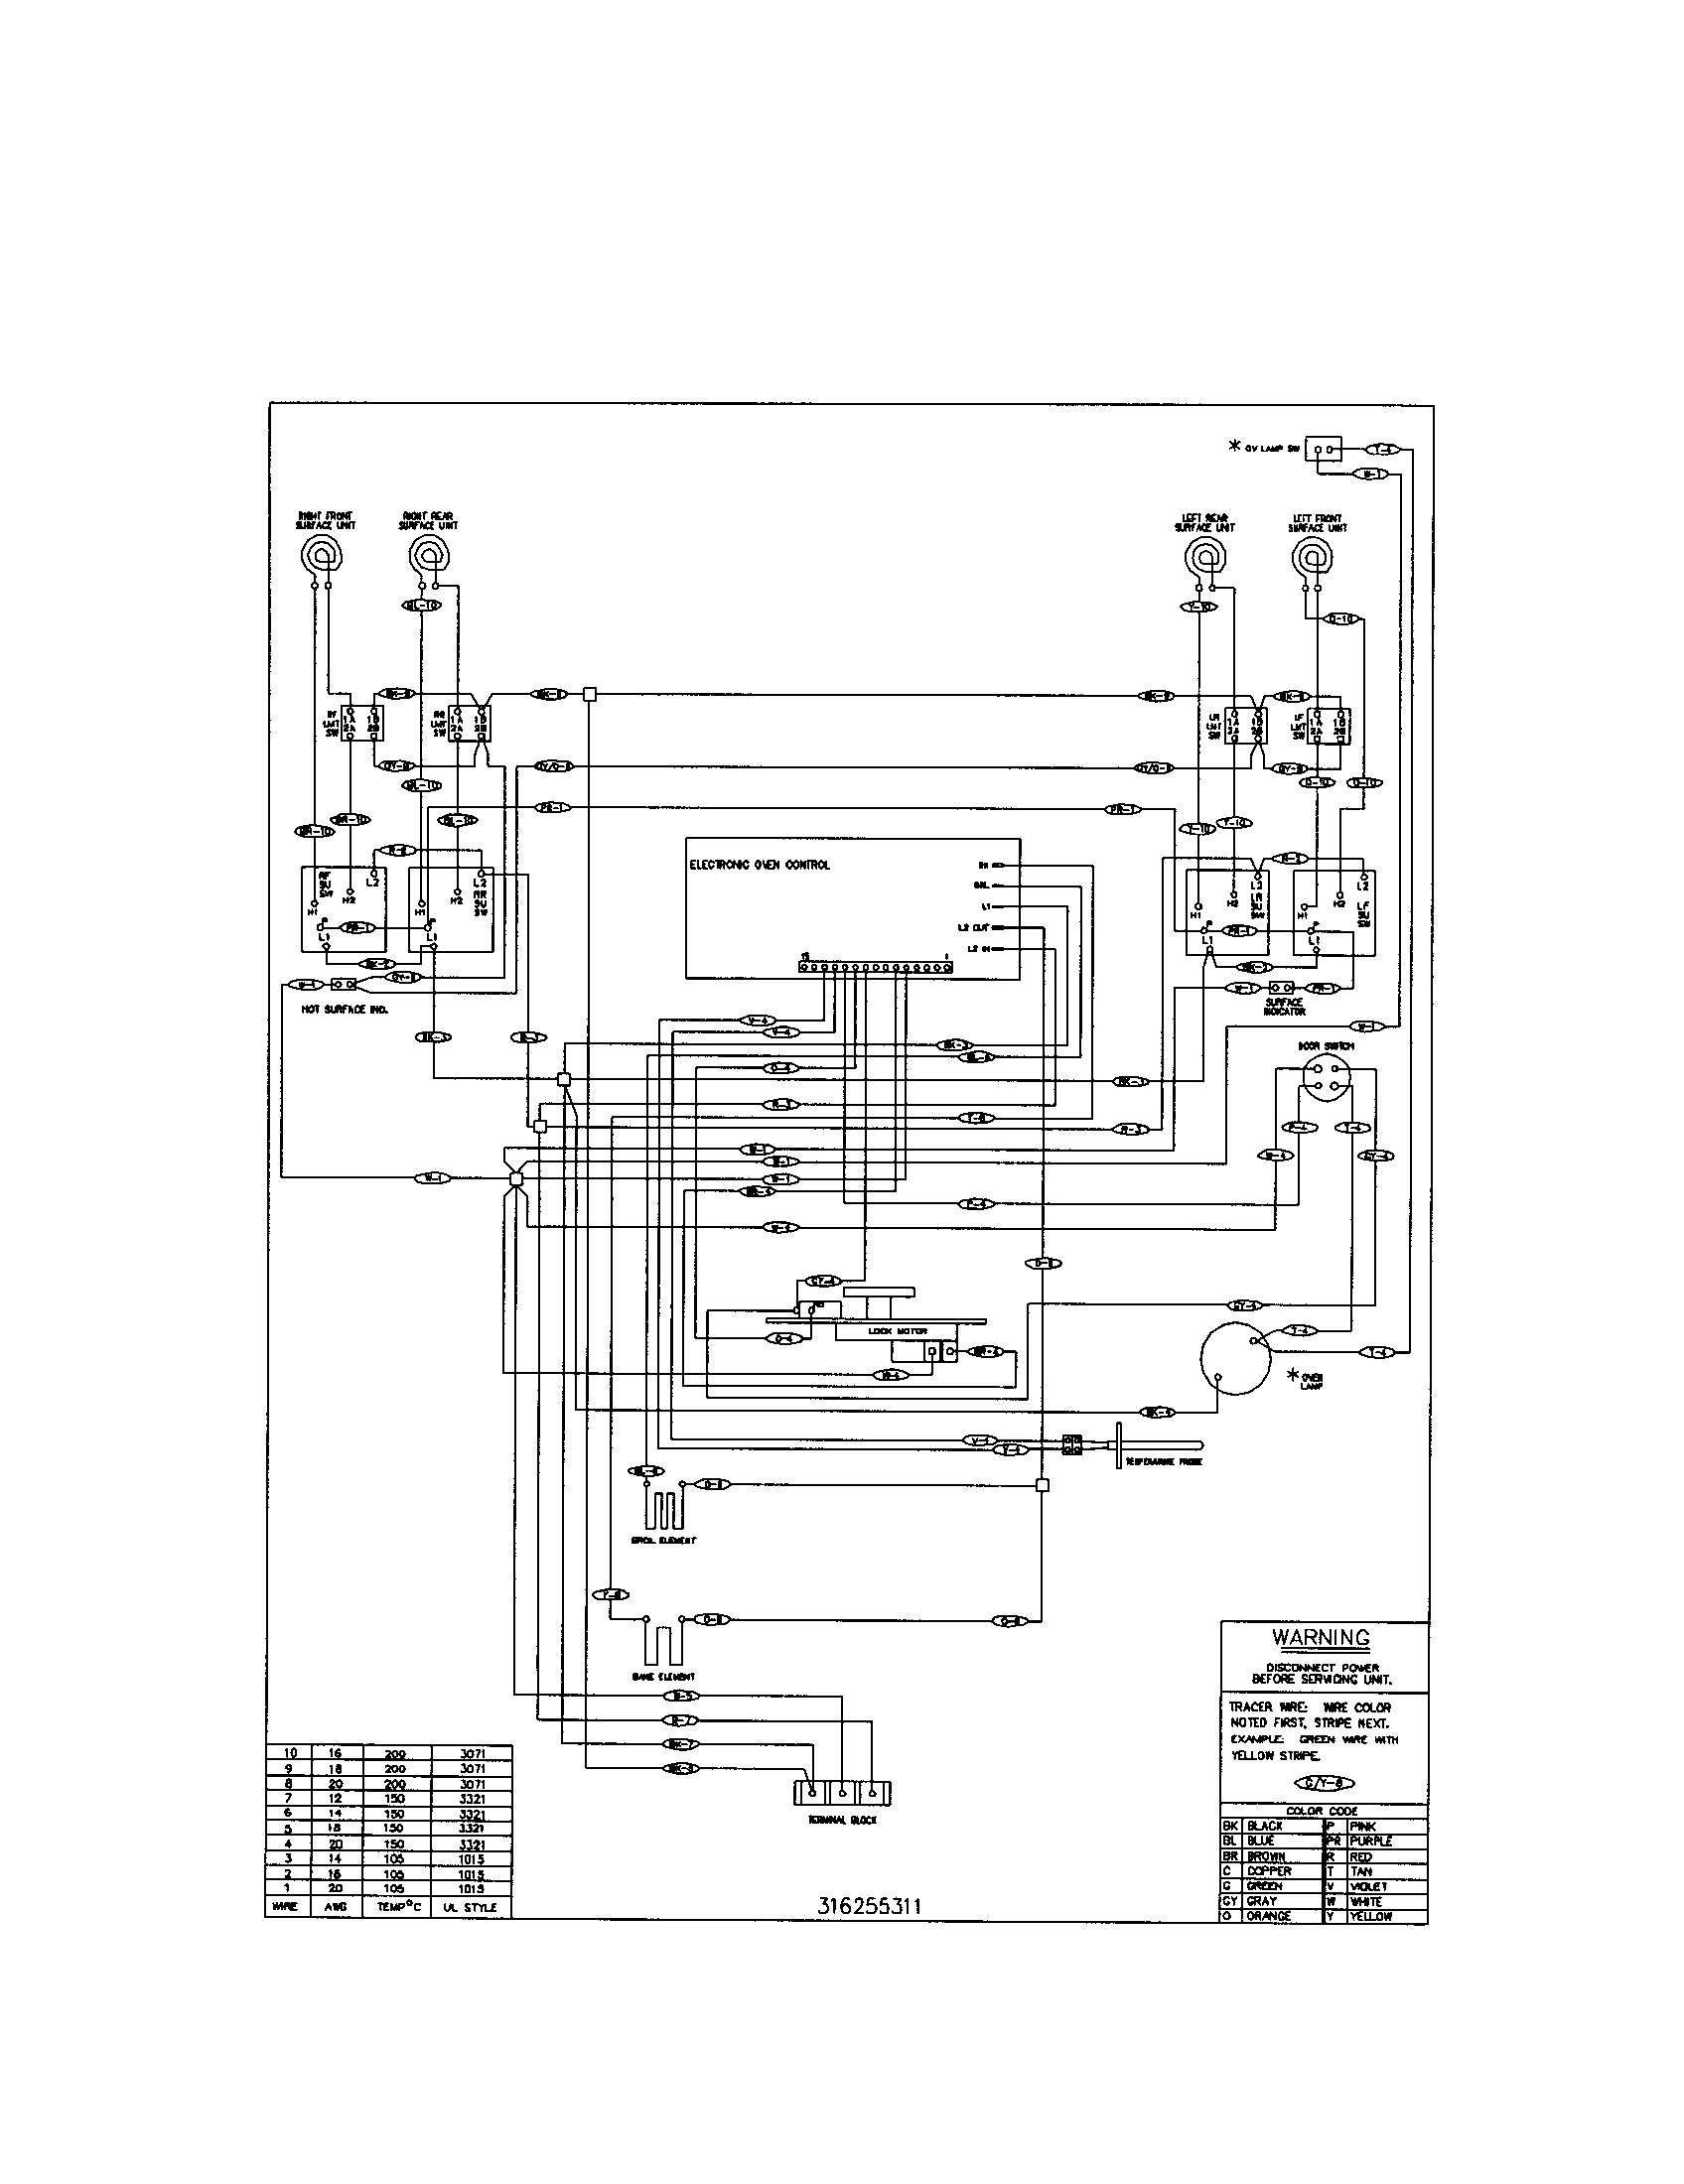 Wire Diagram For Kenmore Elite 790 Wall Oven Honda Code